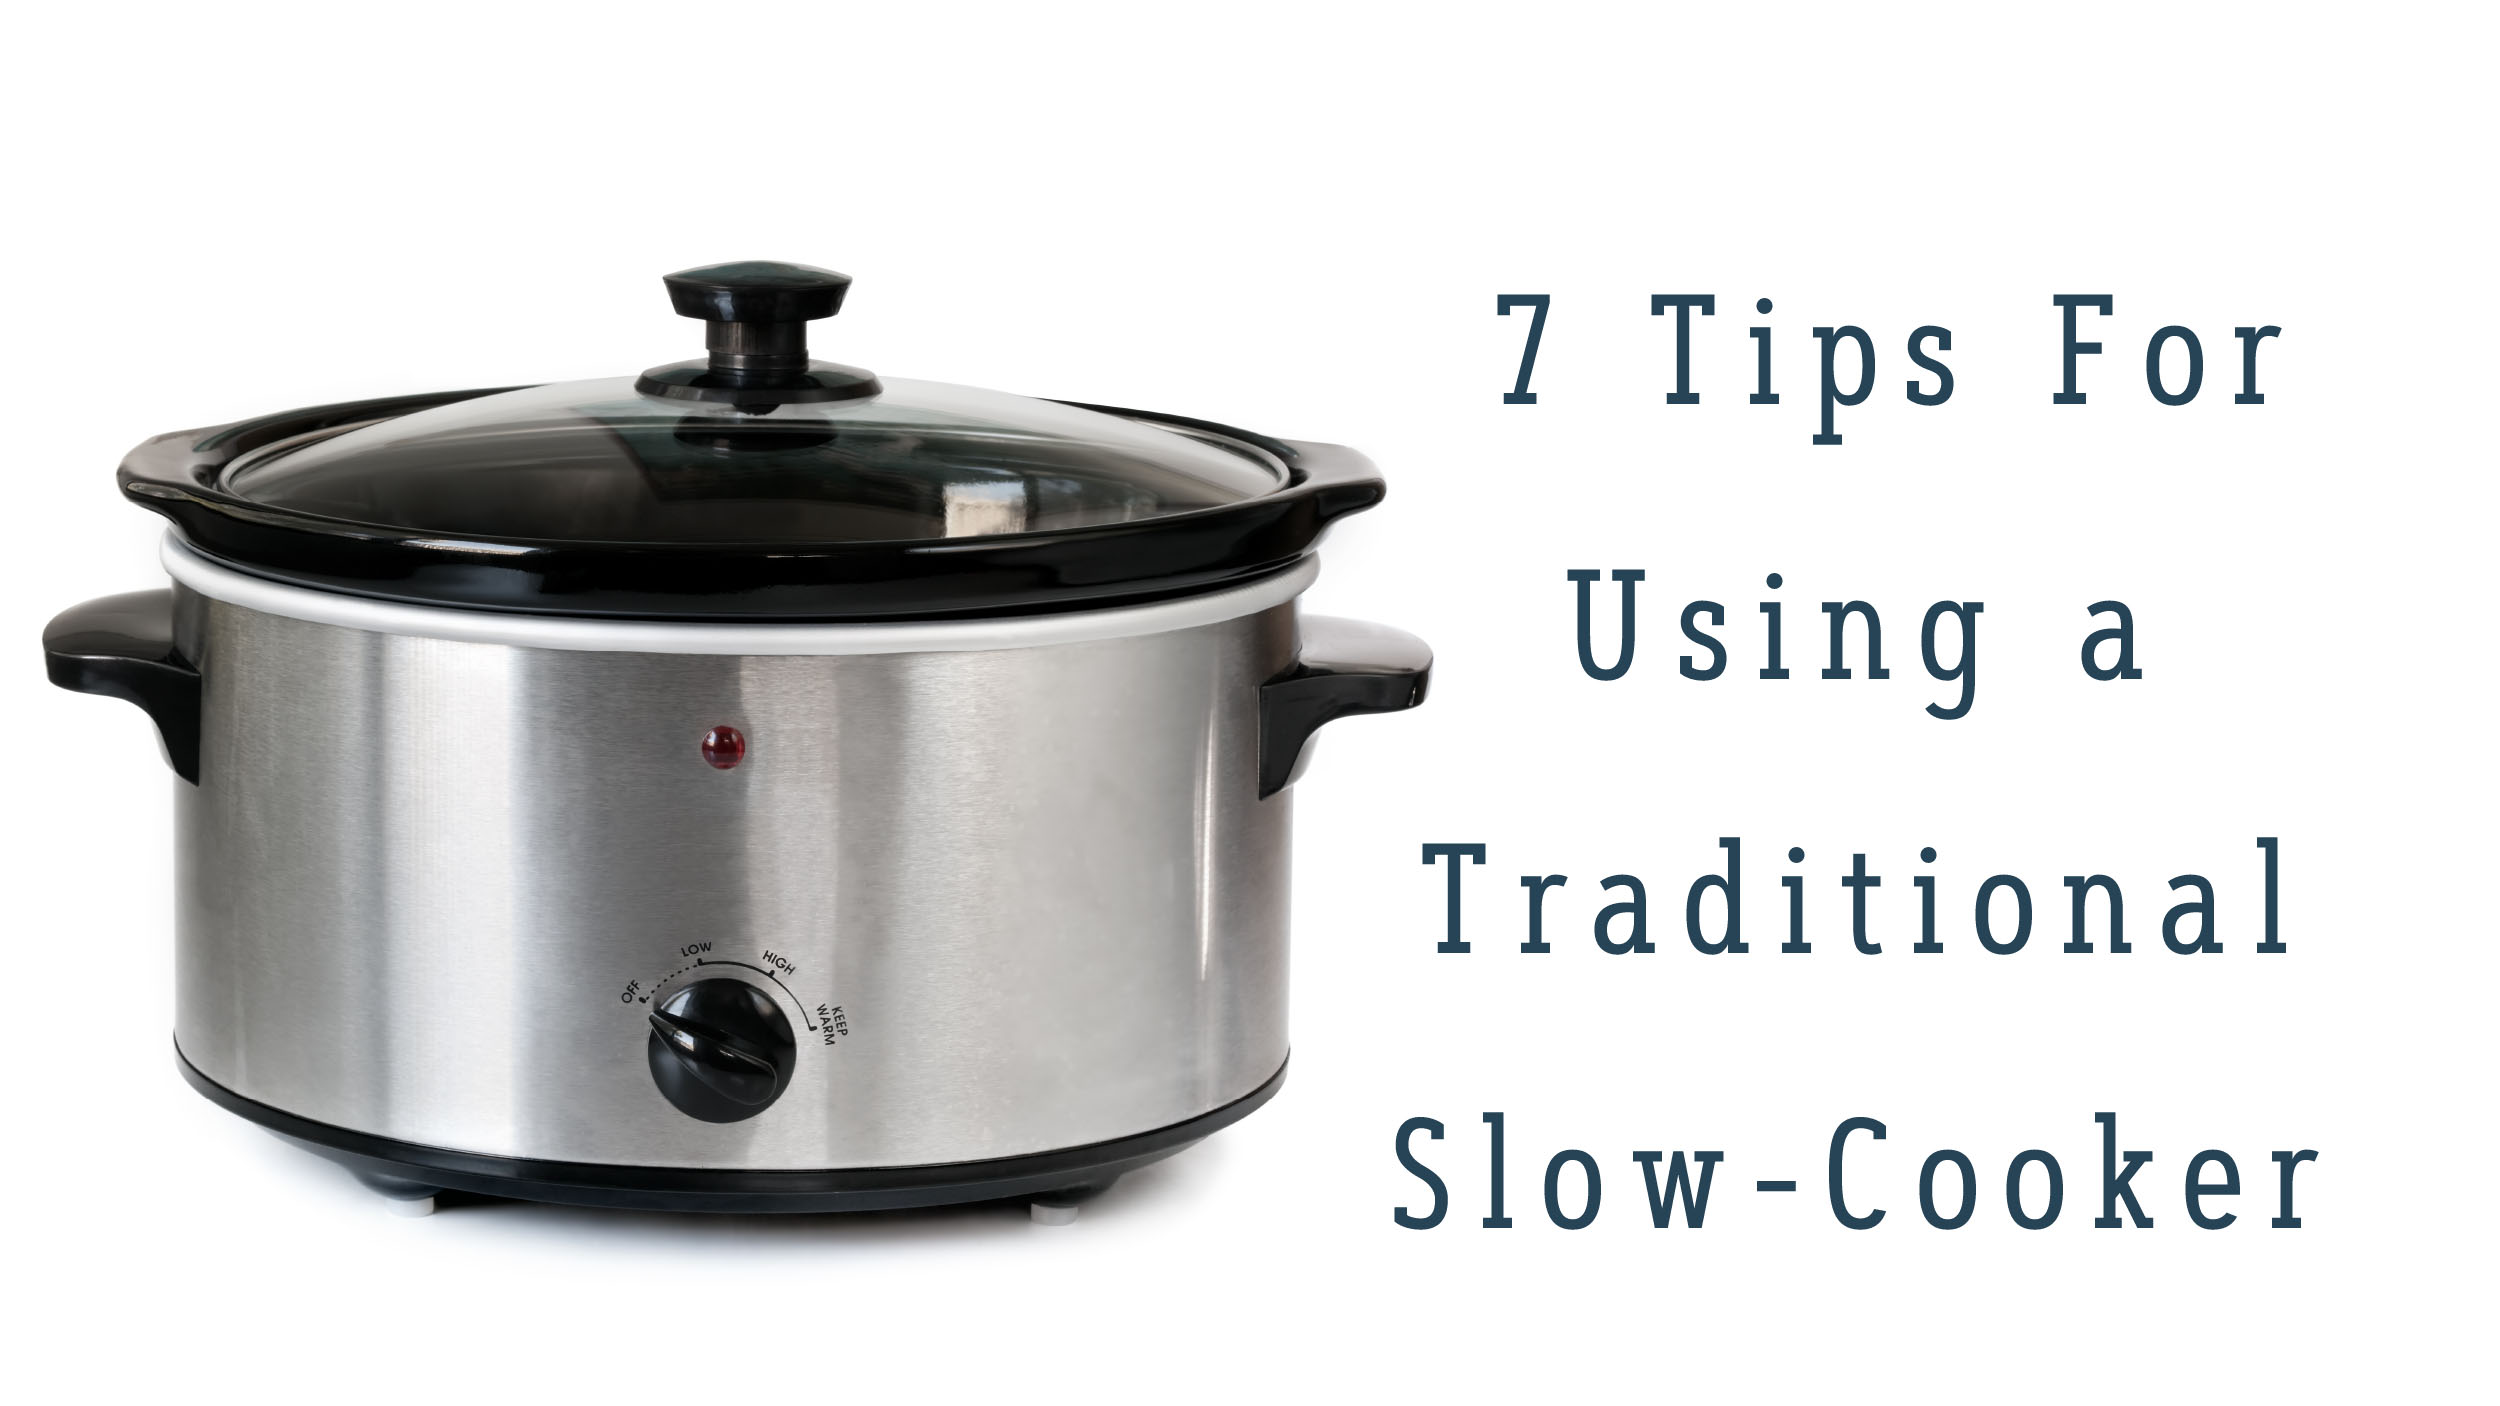 7 Tips for Using a Traditional Slow-Cooker